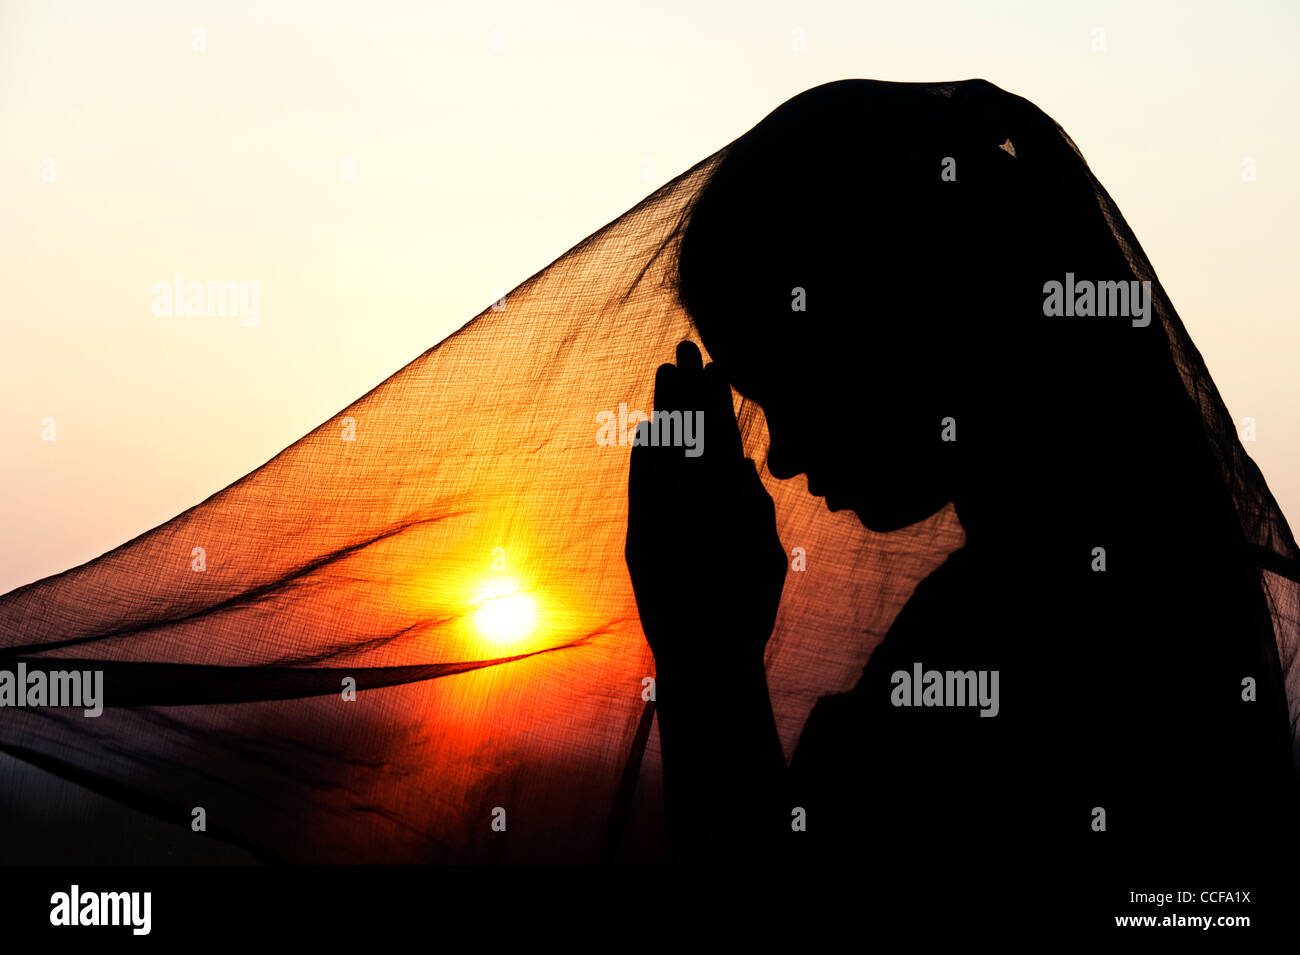 Indian teenage girl praying at sunset covered by a veil. Silhouette. India - Stock Image